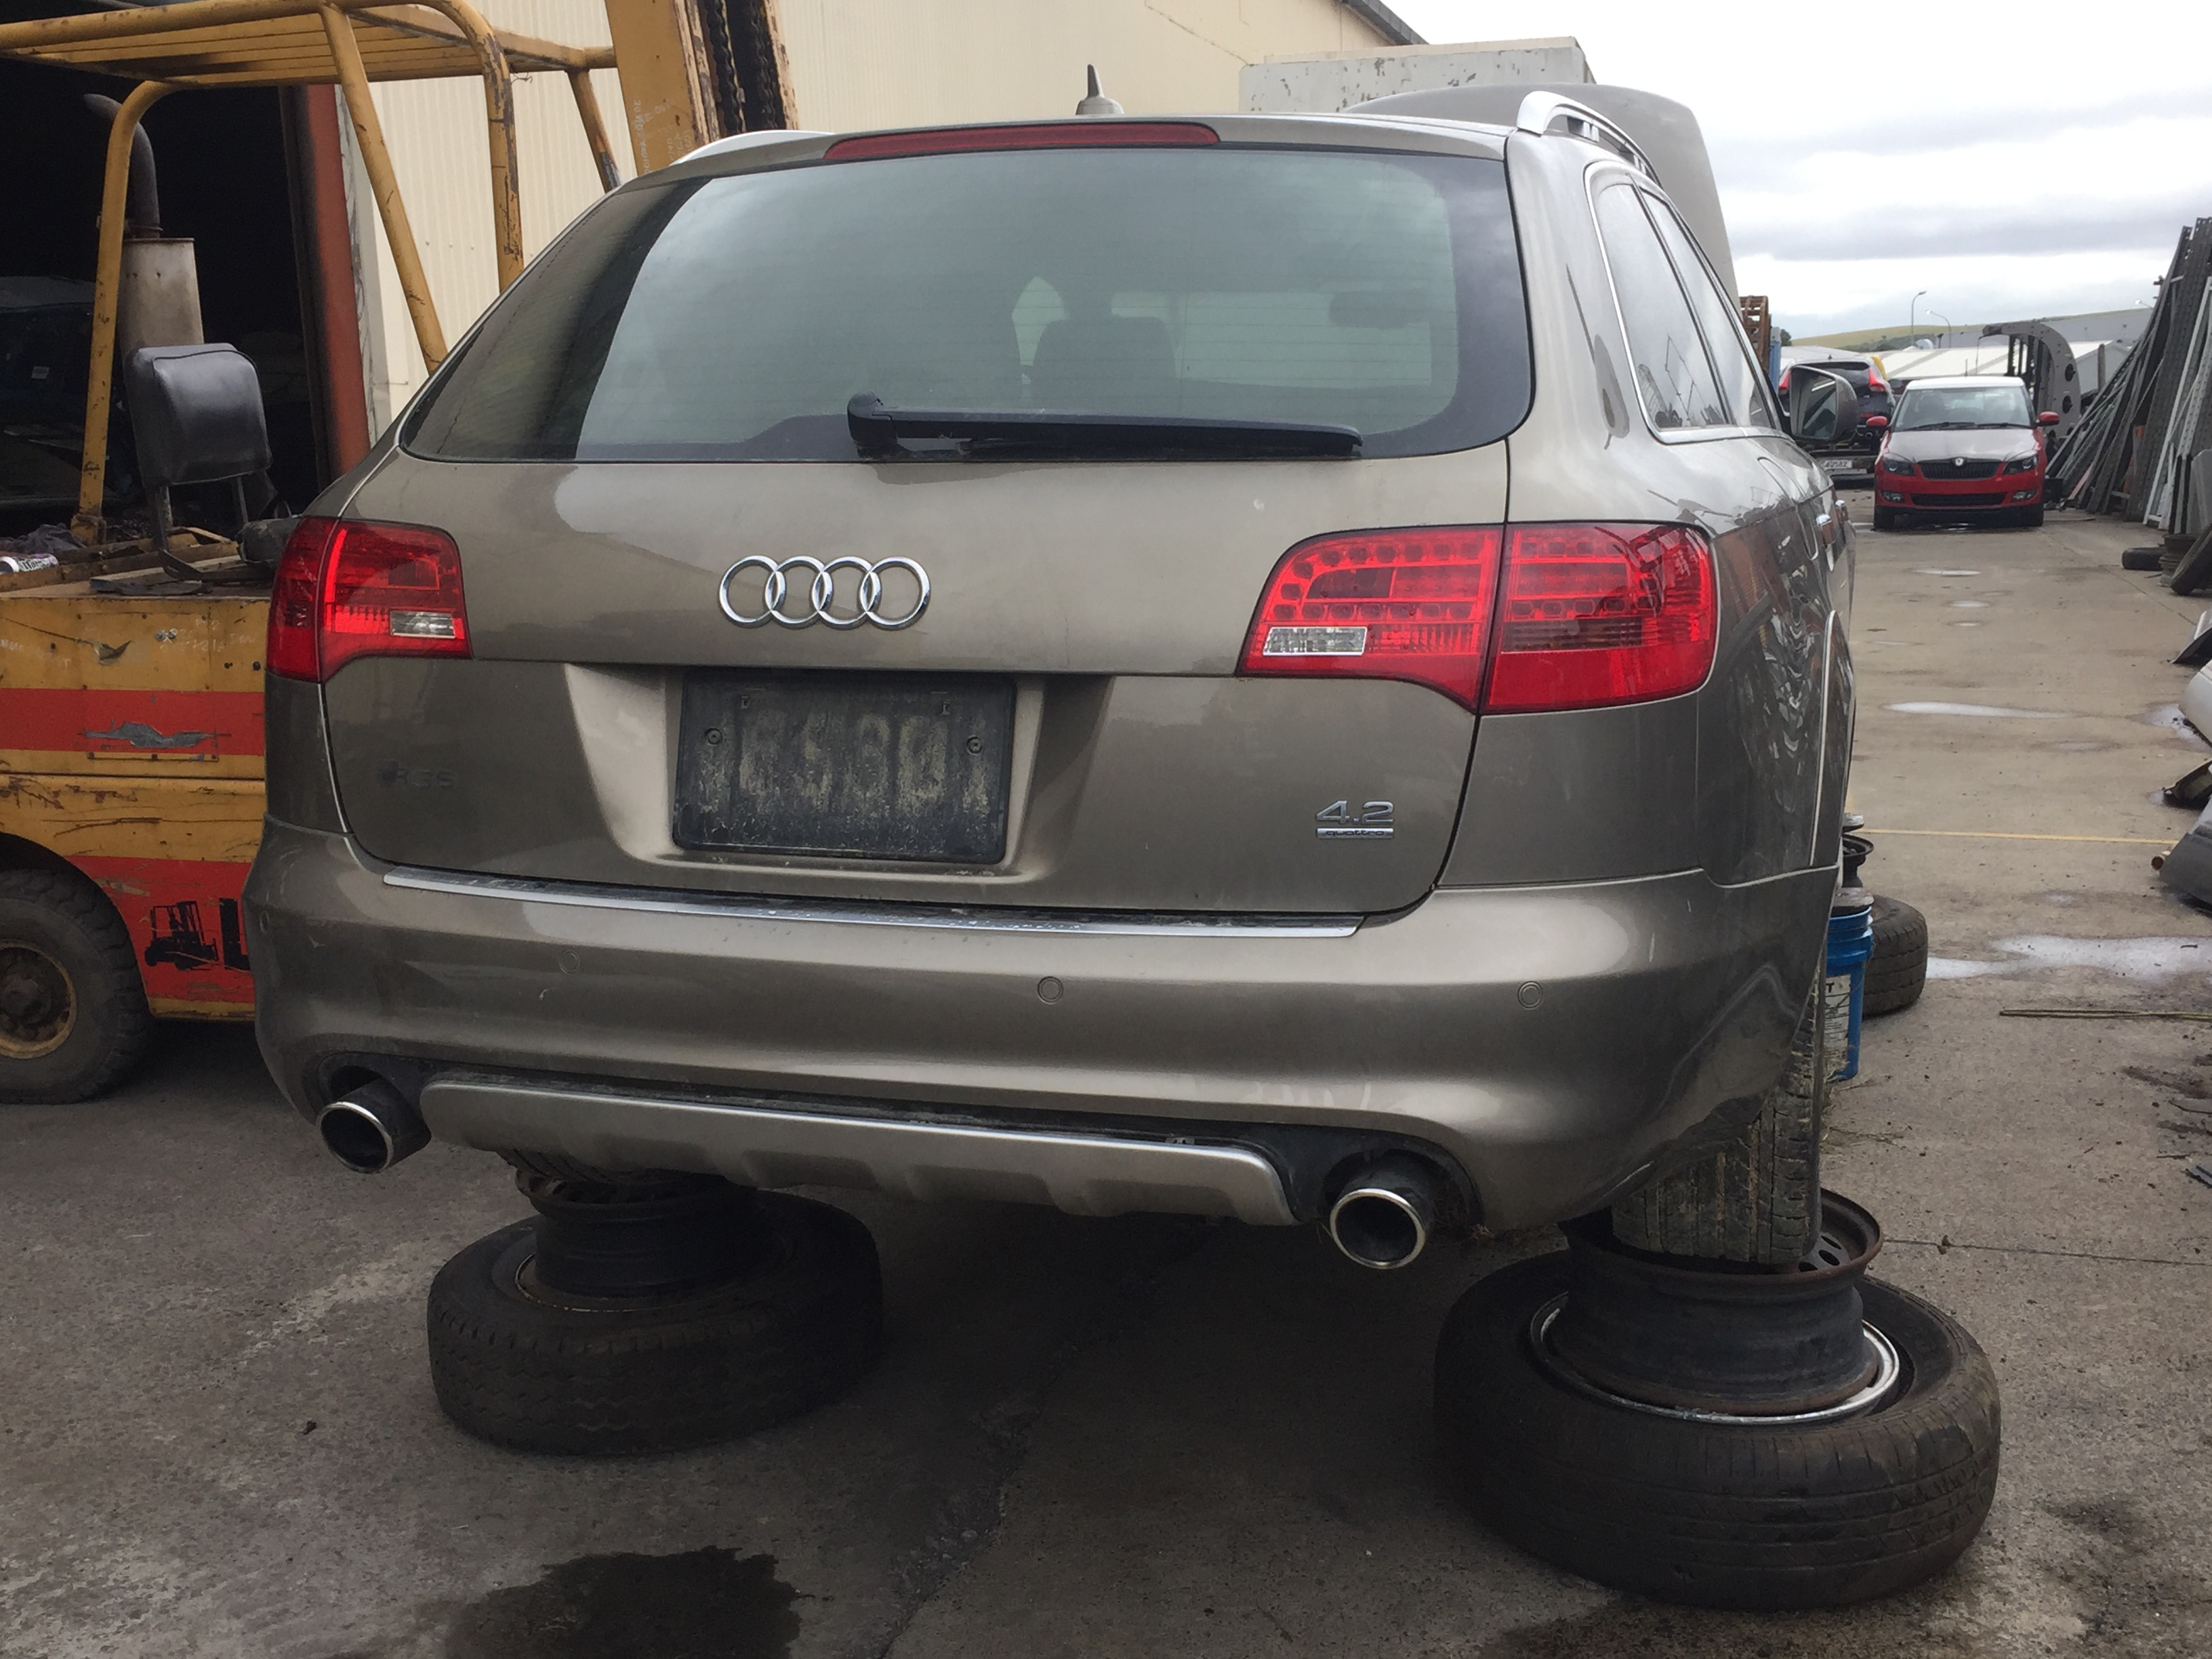 Audi Allroad V8 2006 parts